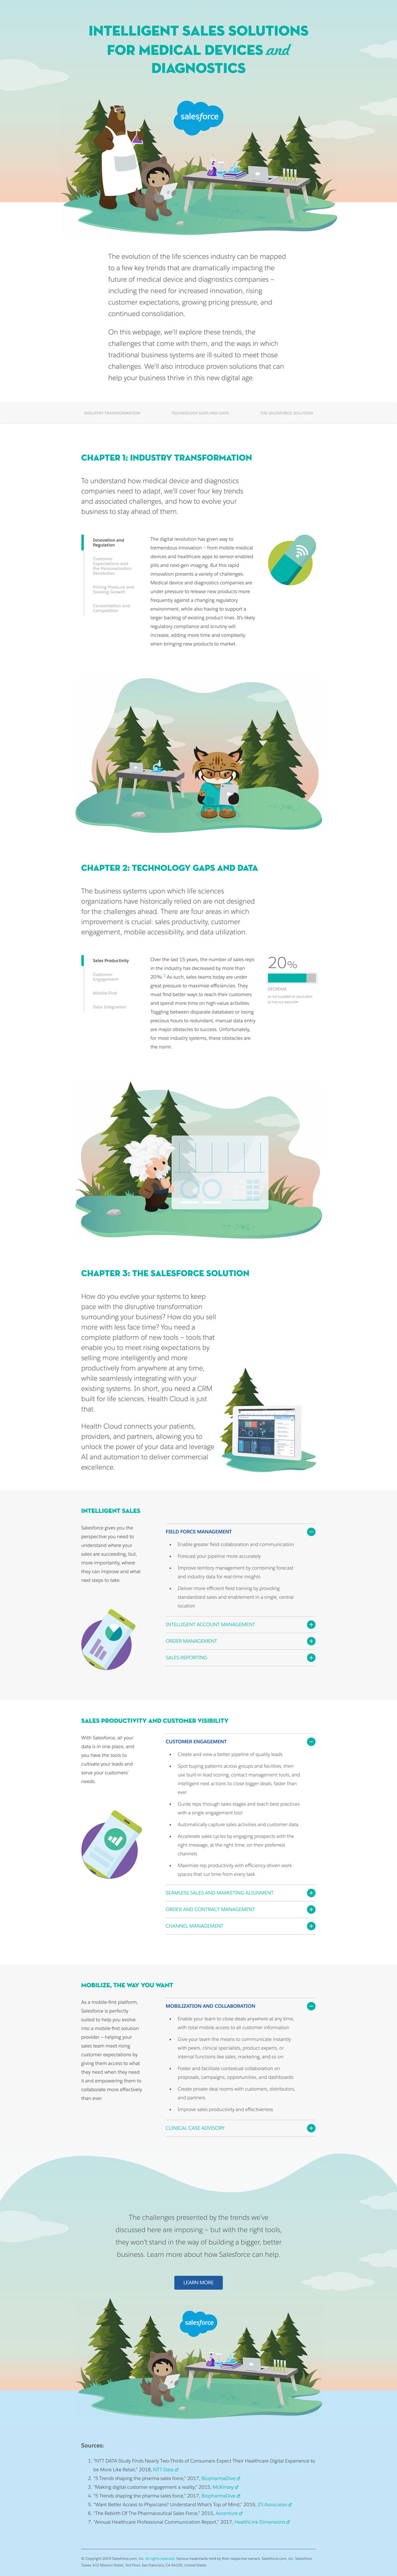 A screenshot of a Salesforce ebook, featuring Cody the bear and Astro holding laboratory equipment.